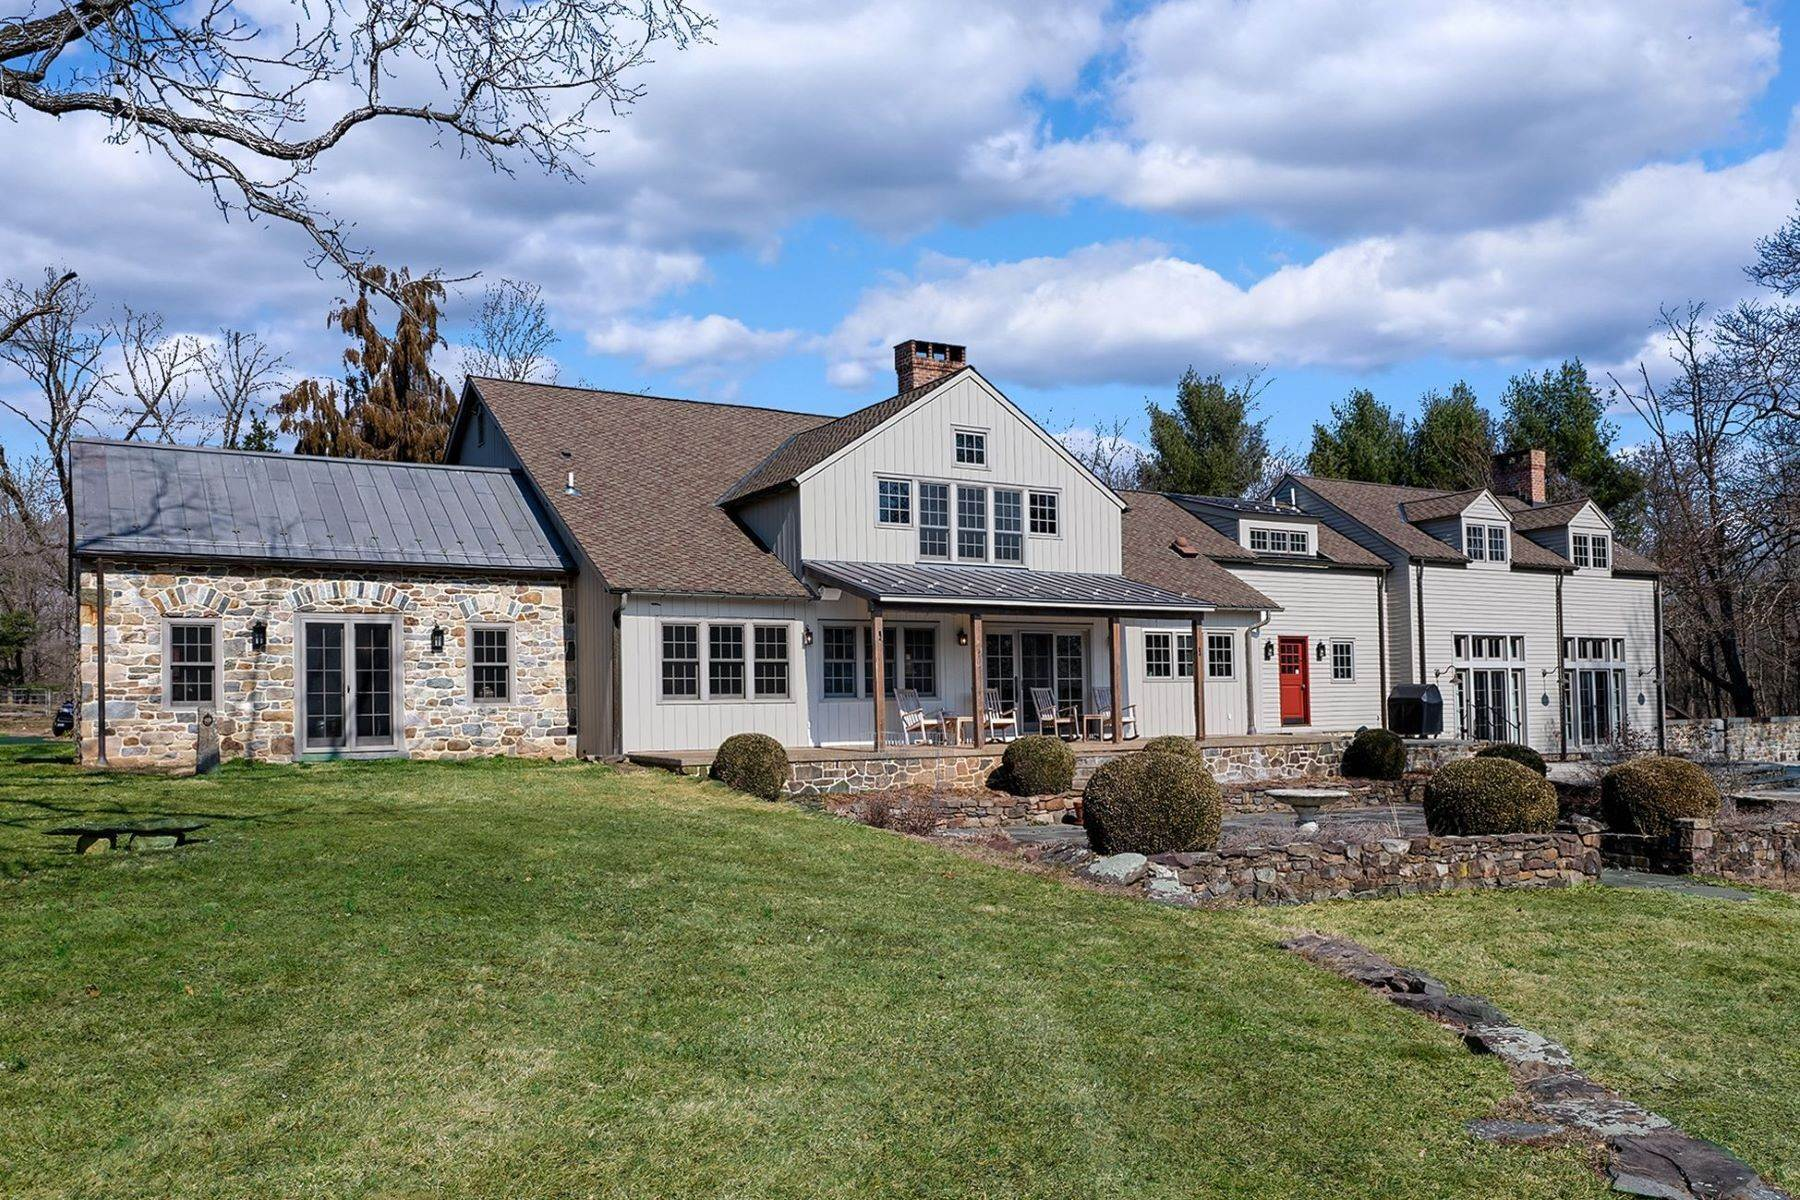 Farm and Ranch Properties for Active at Idyllic Historic Farm With Rich, Modern Finishes 111 East Prospect Street Hopewell, New Jersey 08525 United States